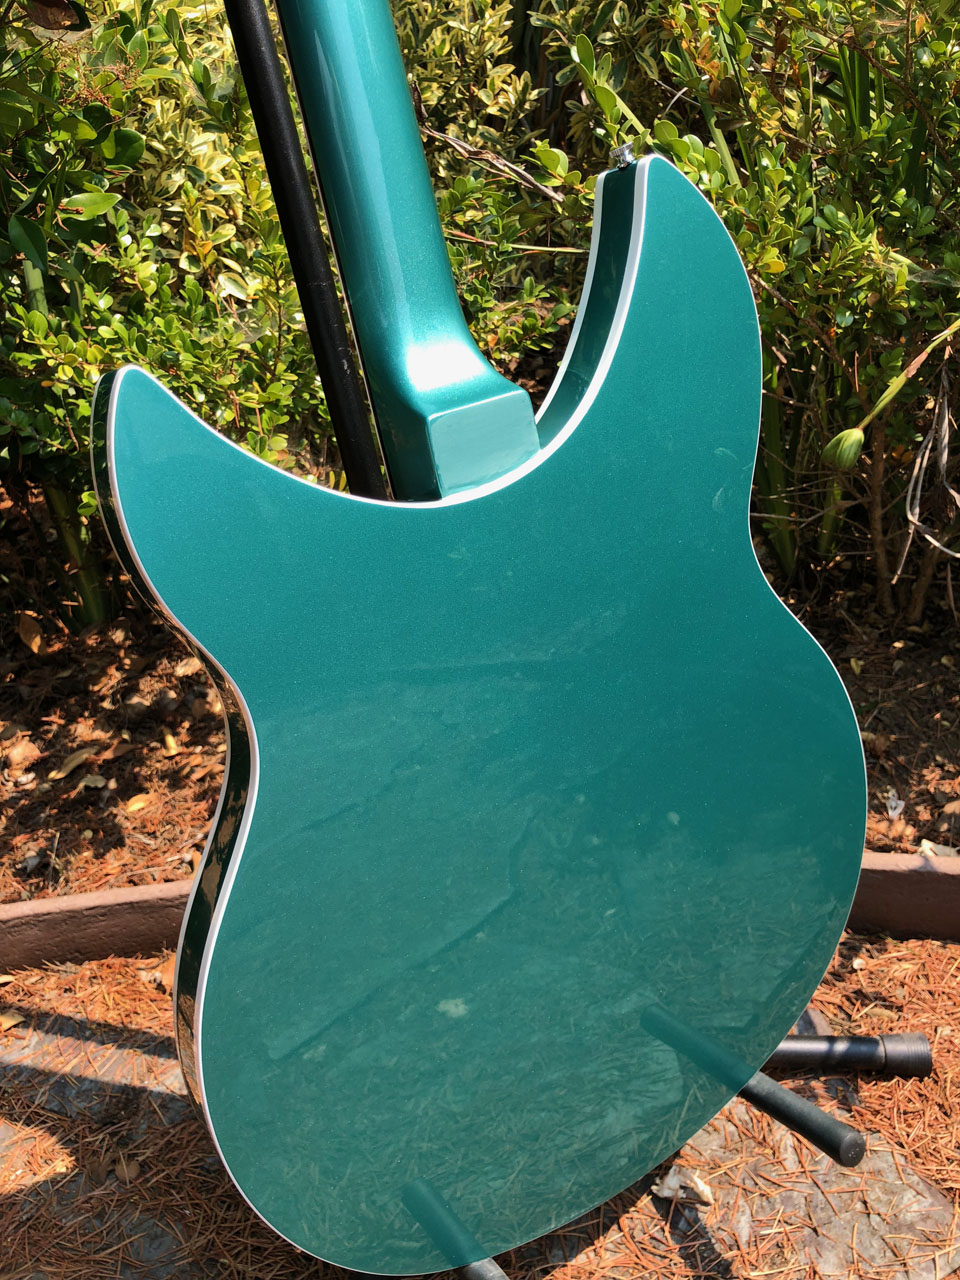 TURQUOISE PEARLESCENT FINISH HAS MIRROR GLOSS